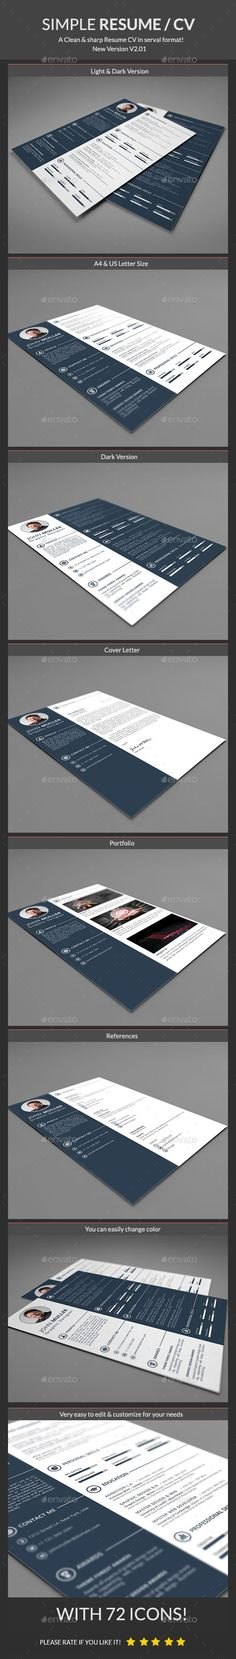 Simple Resume Simple resume, Simple resume template and Template - simple resume letter